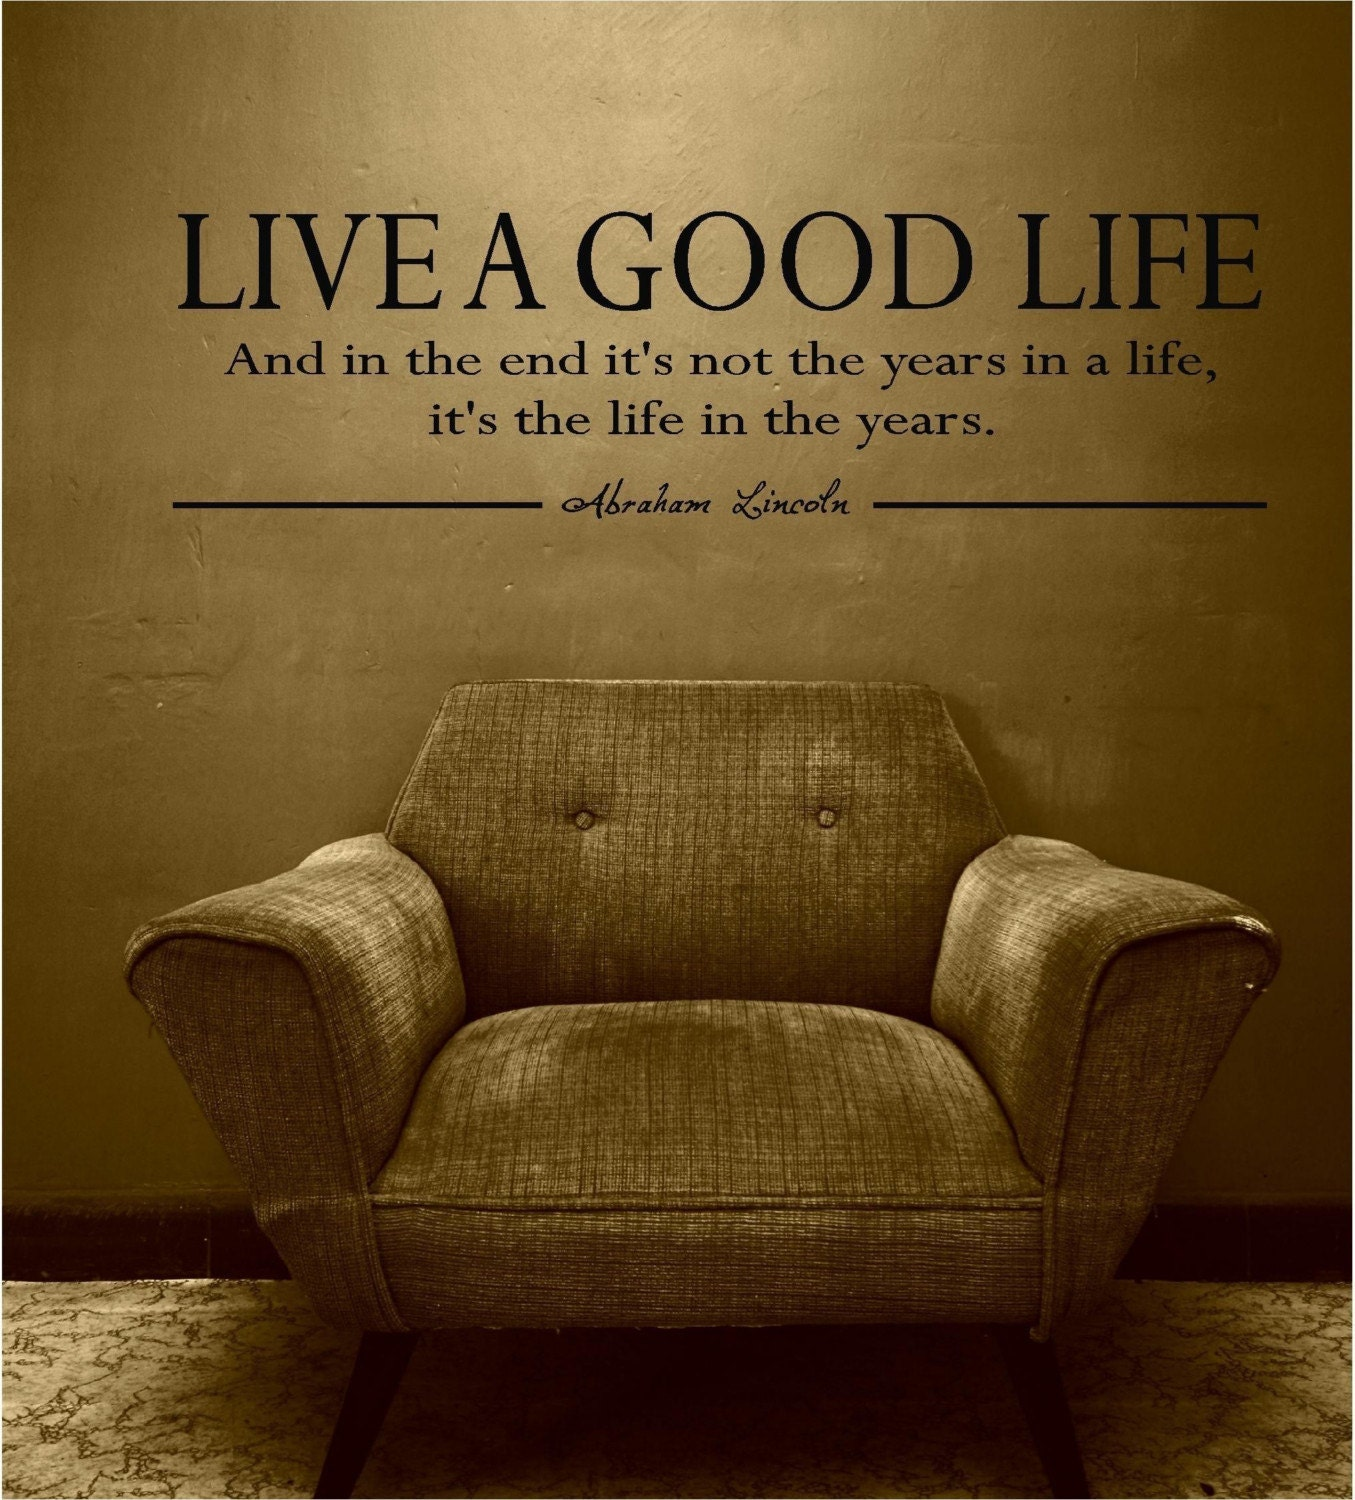 Good life quotes